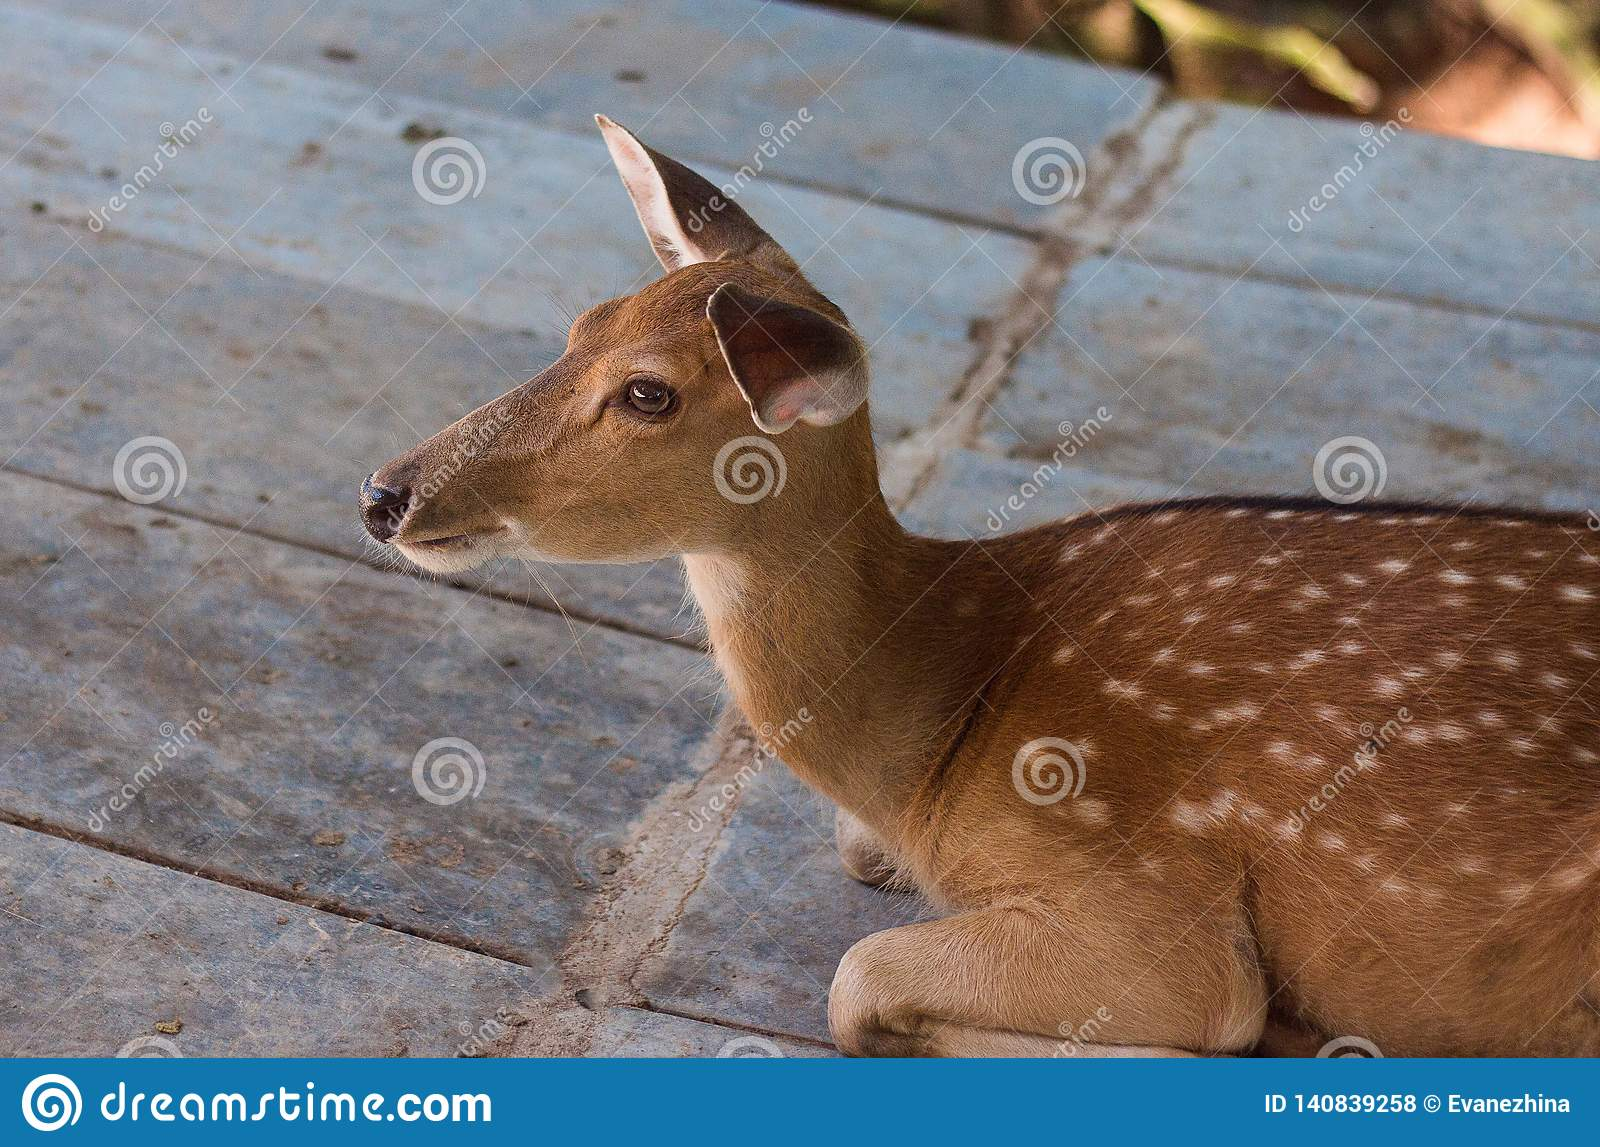 Close-up of young brown deer in zoo